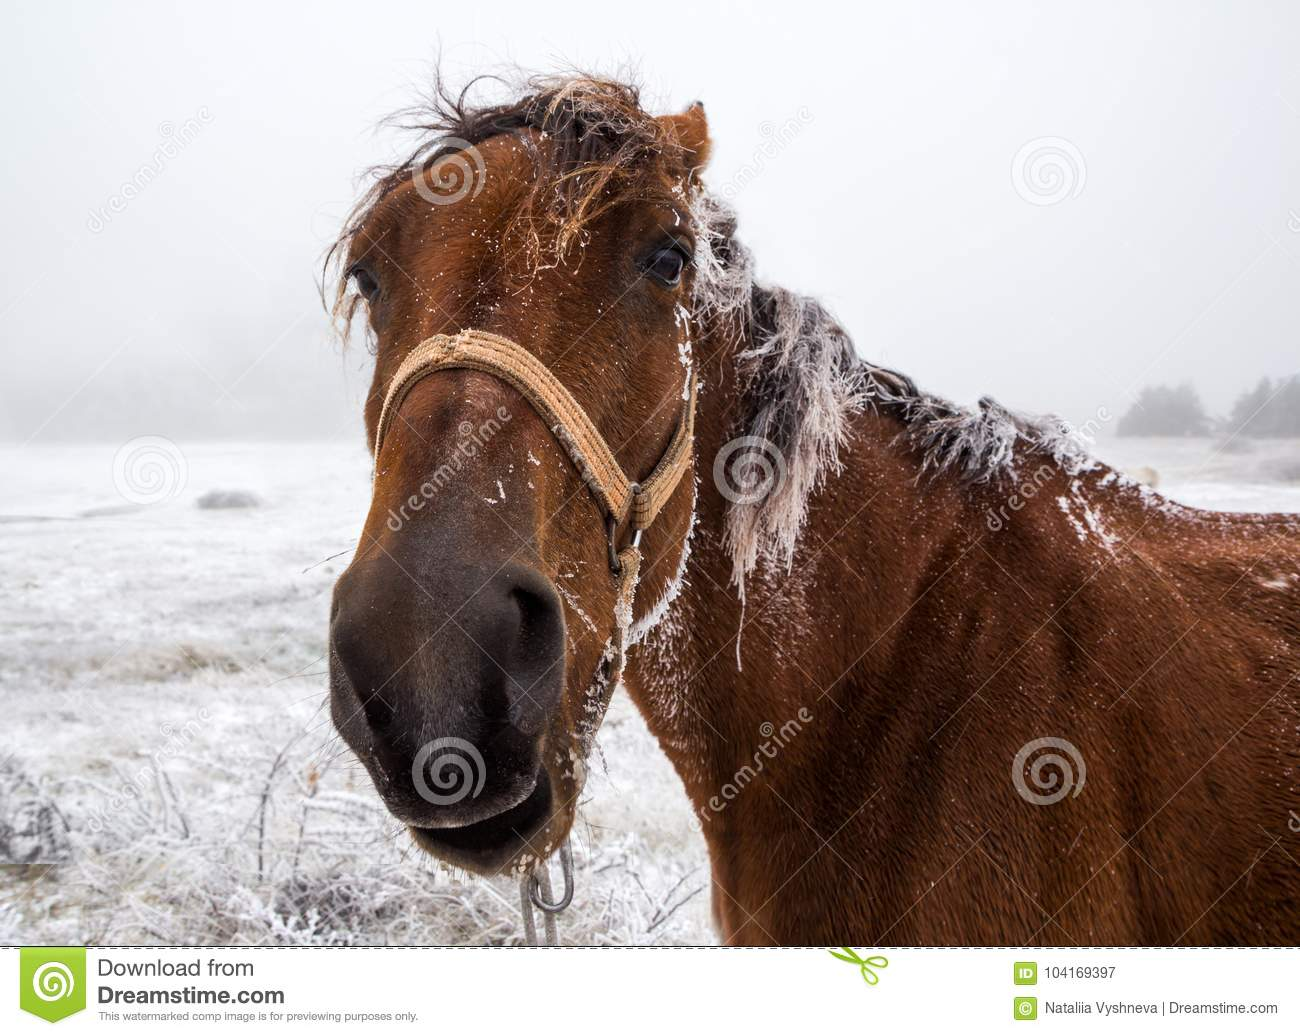 2 352 Funny Looking Horse Photos Free Royalty Free Stock Photos From Dreamstime